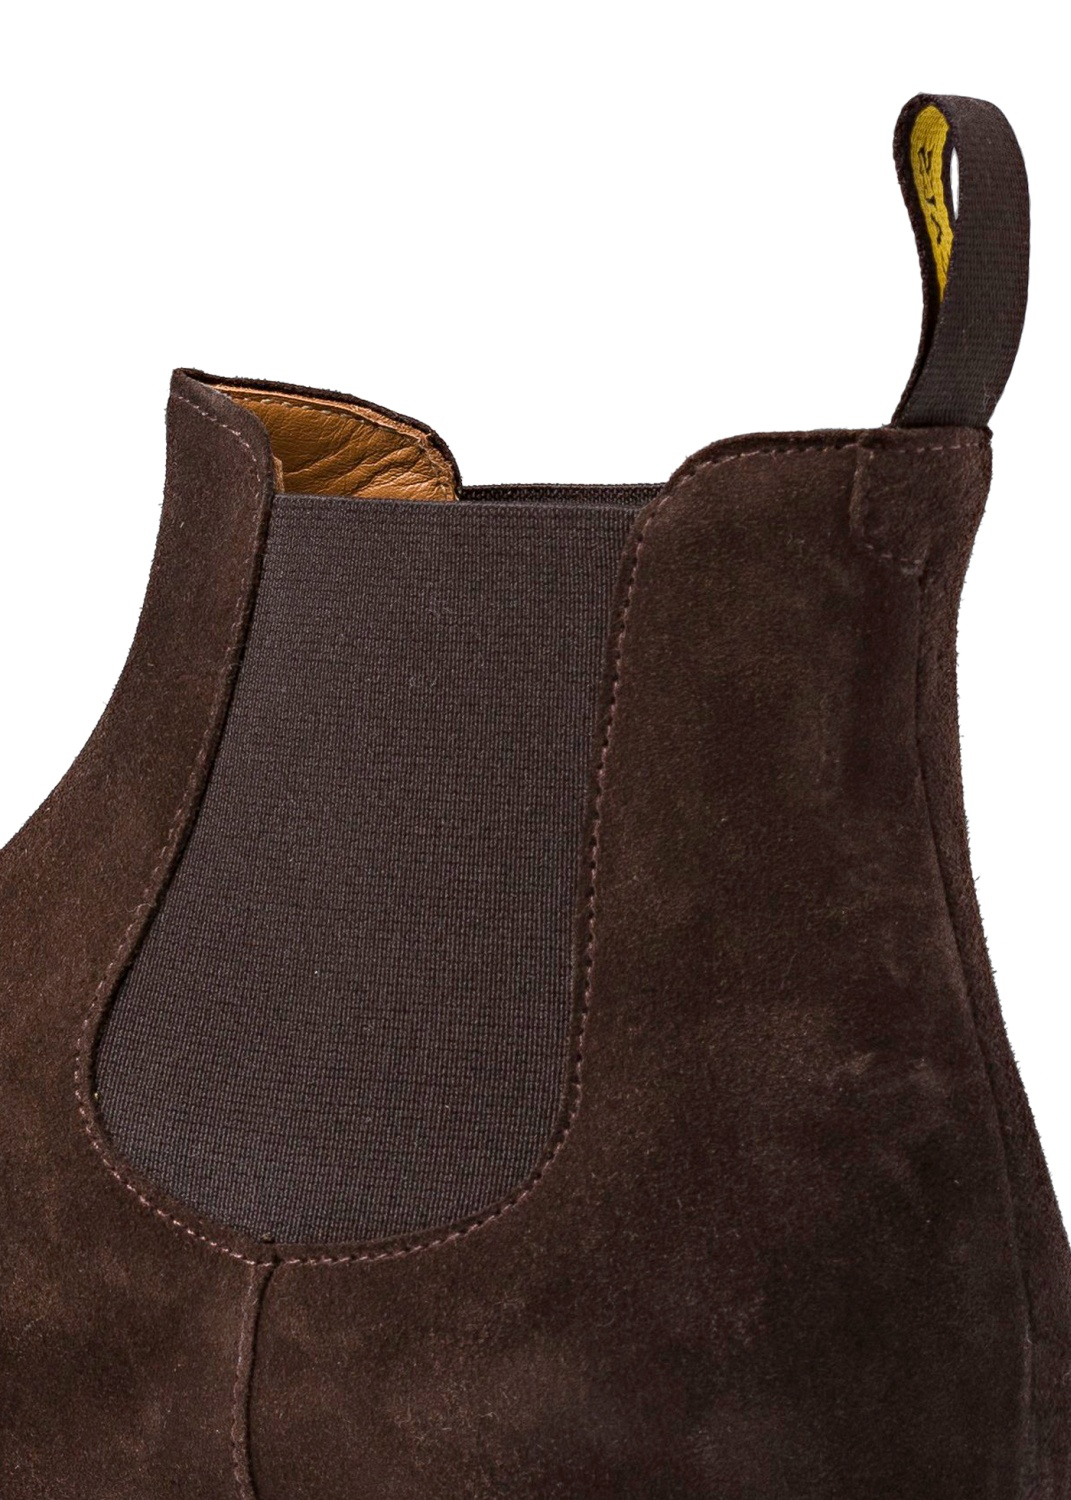 CHELSEA BOOT image number 3